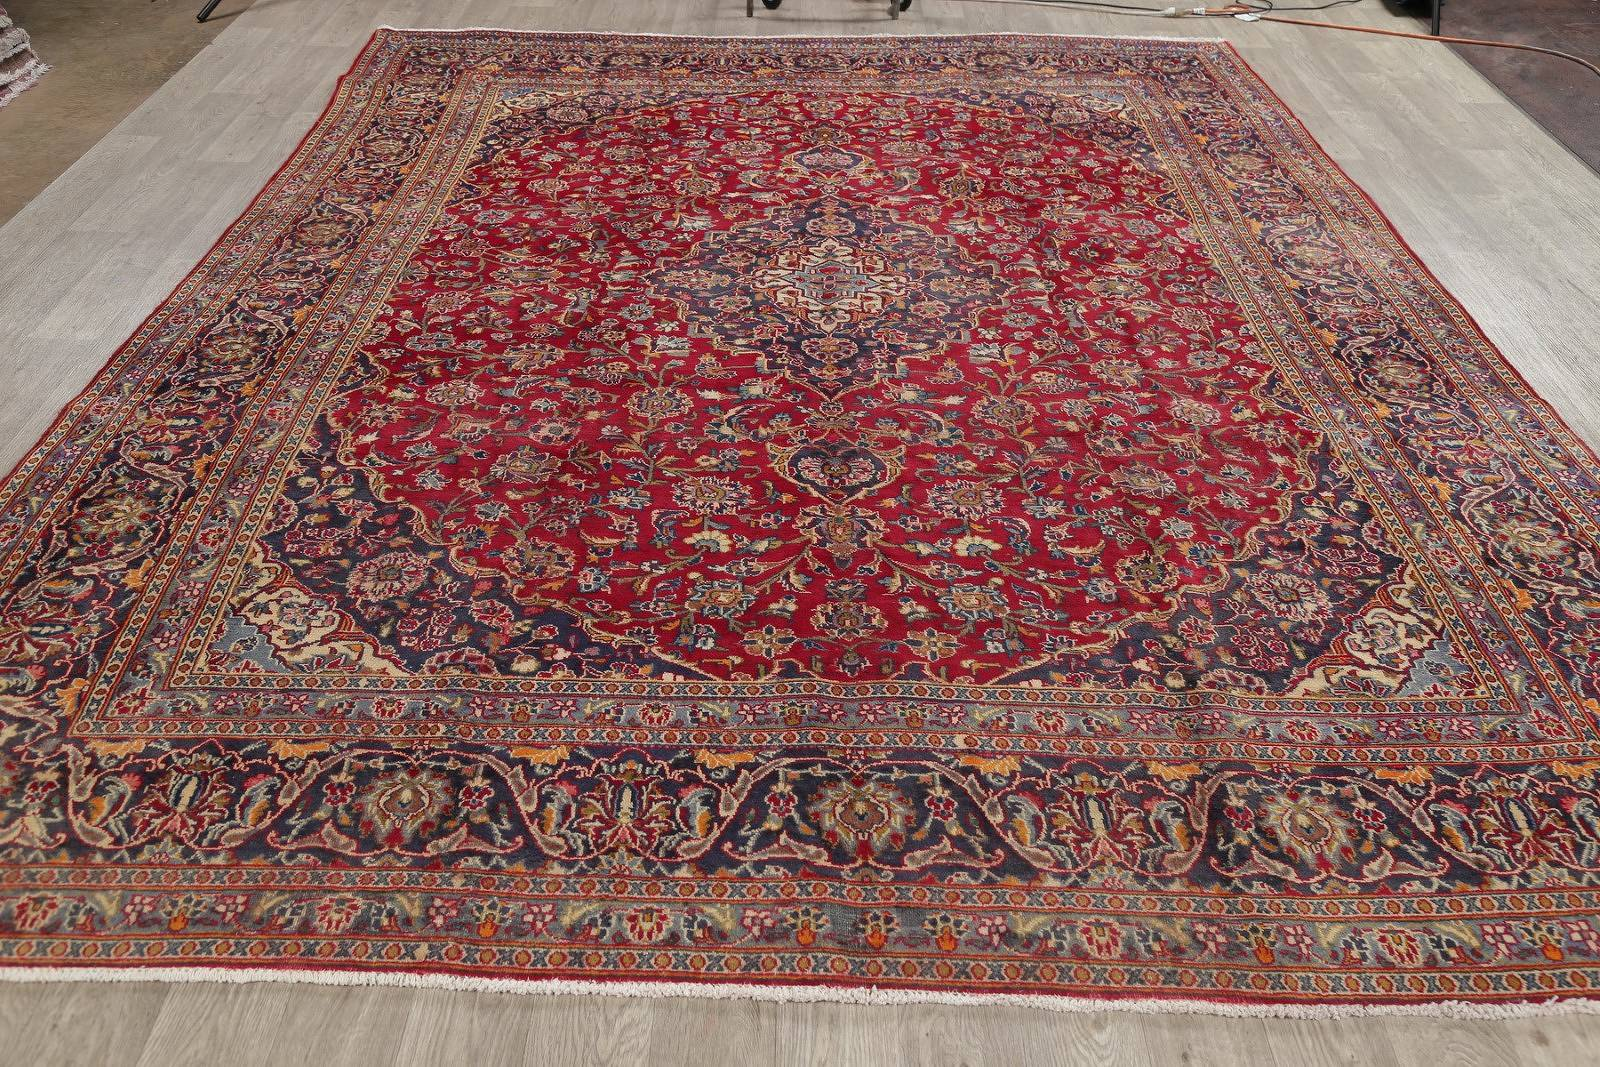 Floral Red Kashan Persian Hand-Knotted Area Rug Wool 9x12